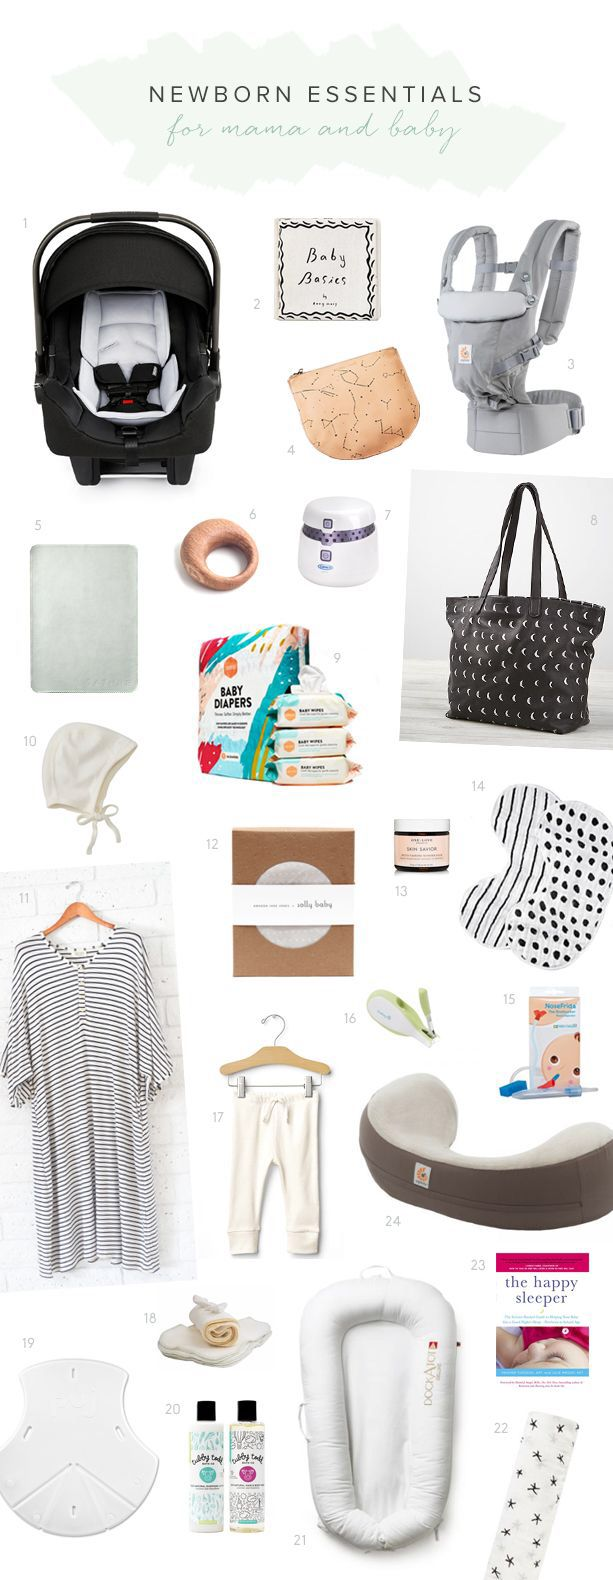 best b a b y images on pinterest  baby registry baby  - modern newborn essentials by  layer cakelet – dwell and slumber